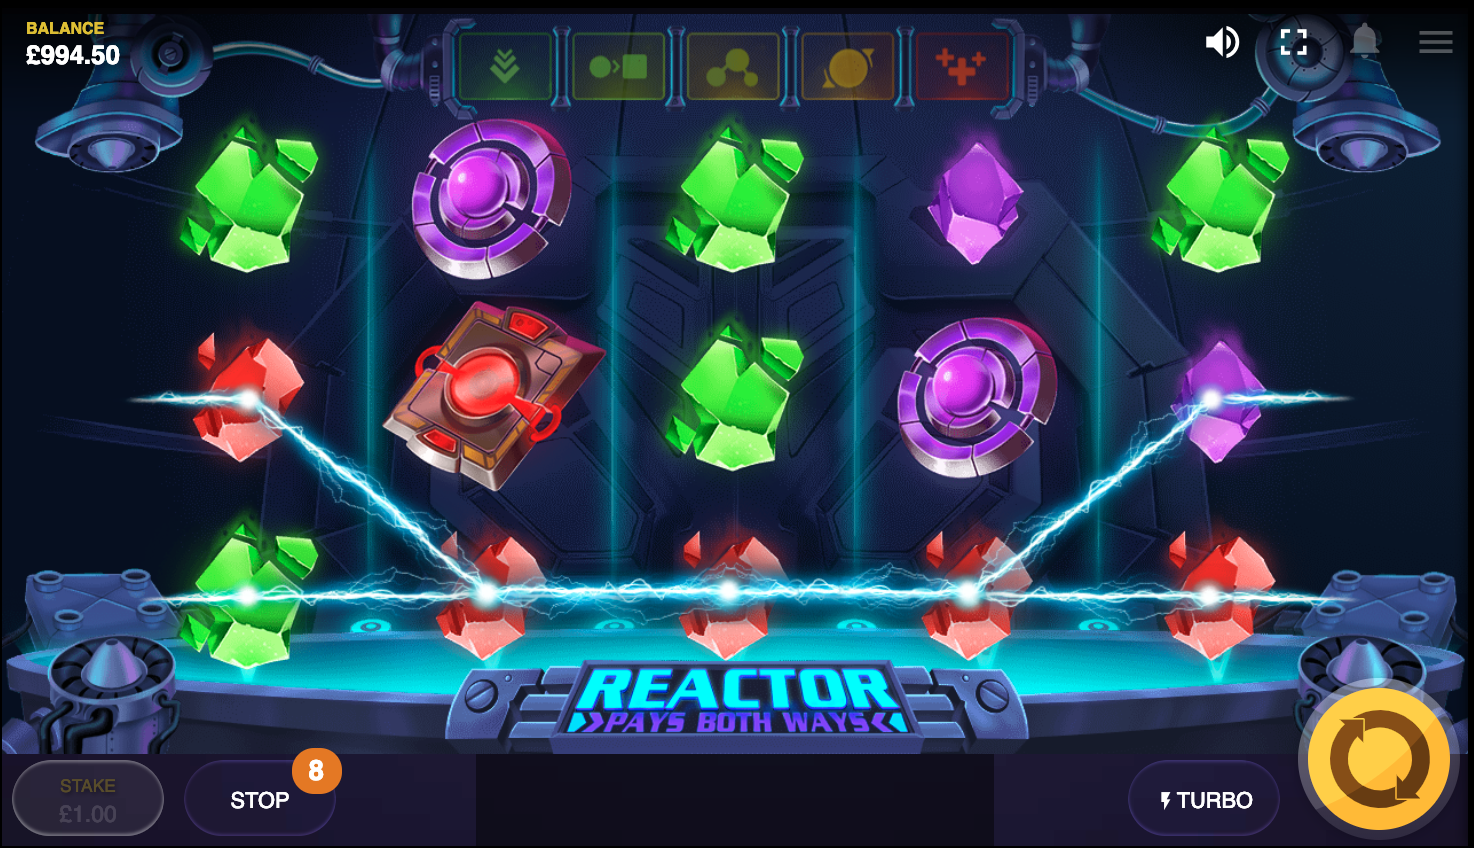 Reactor active winlines visibility